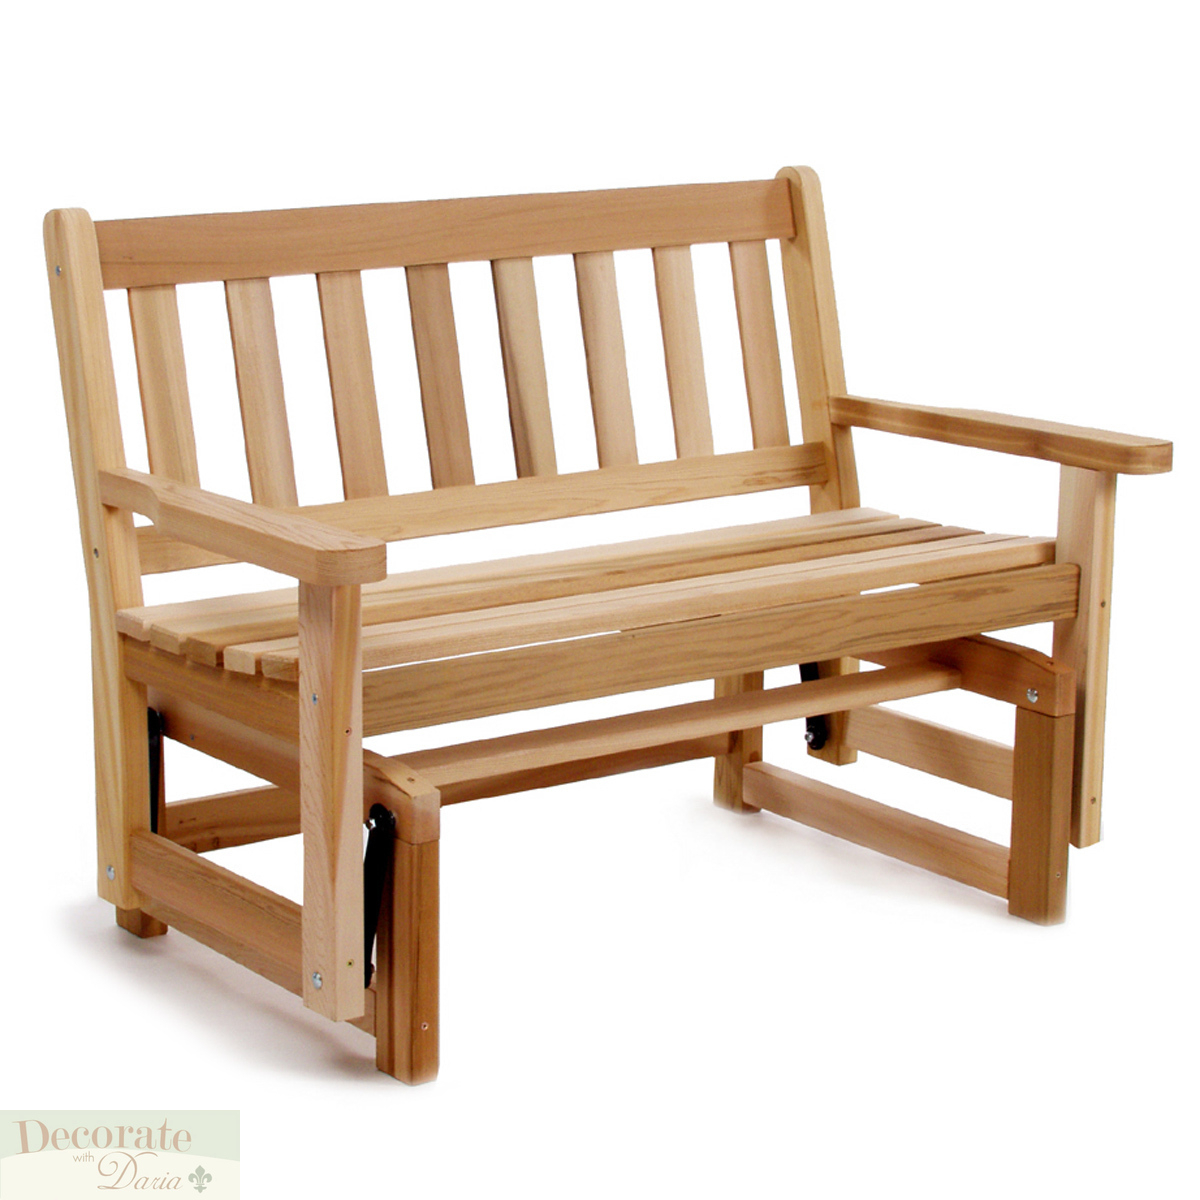 """Details About Glider Bench Motion 48"""" Red Cedar Handcrafted Curved Seat Shaker Style Back New With Regard To 2 Person Natural Cedar Wood Outdoor Gliders (View 11 of 25)"""